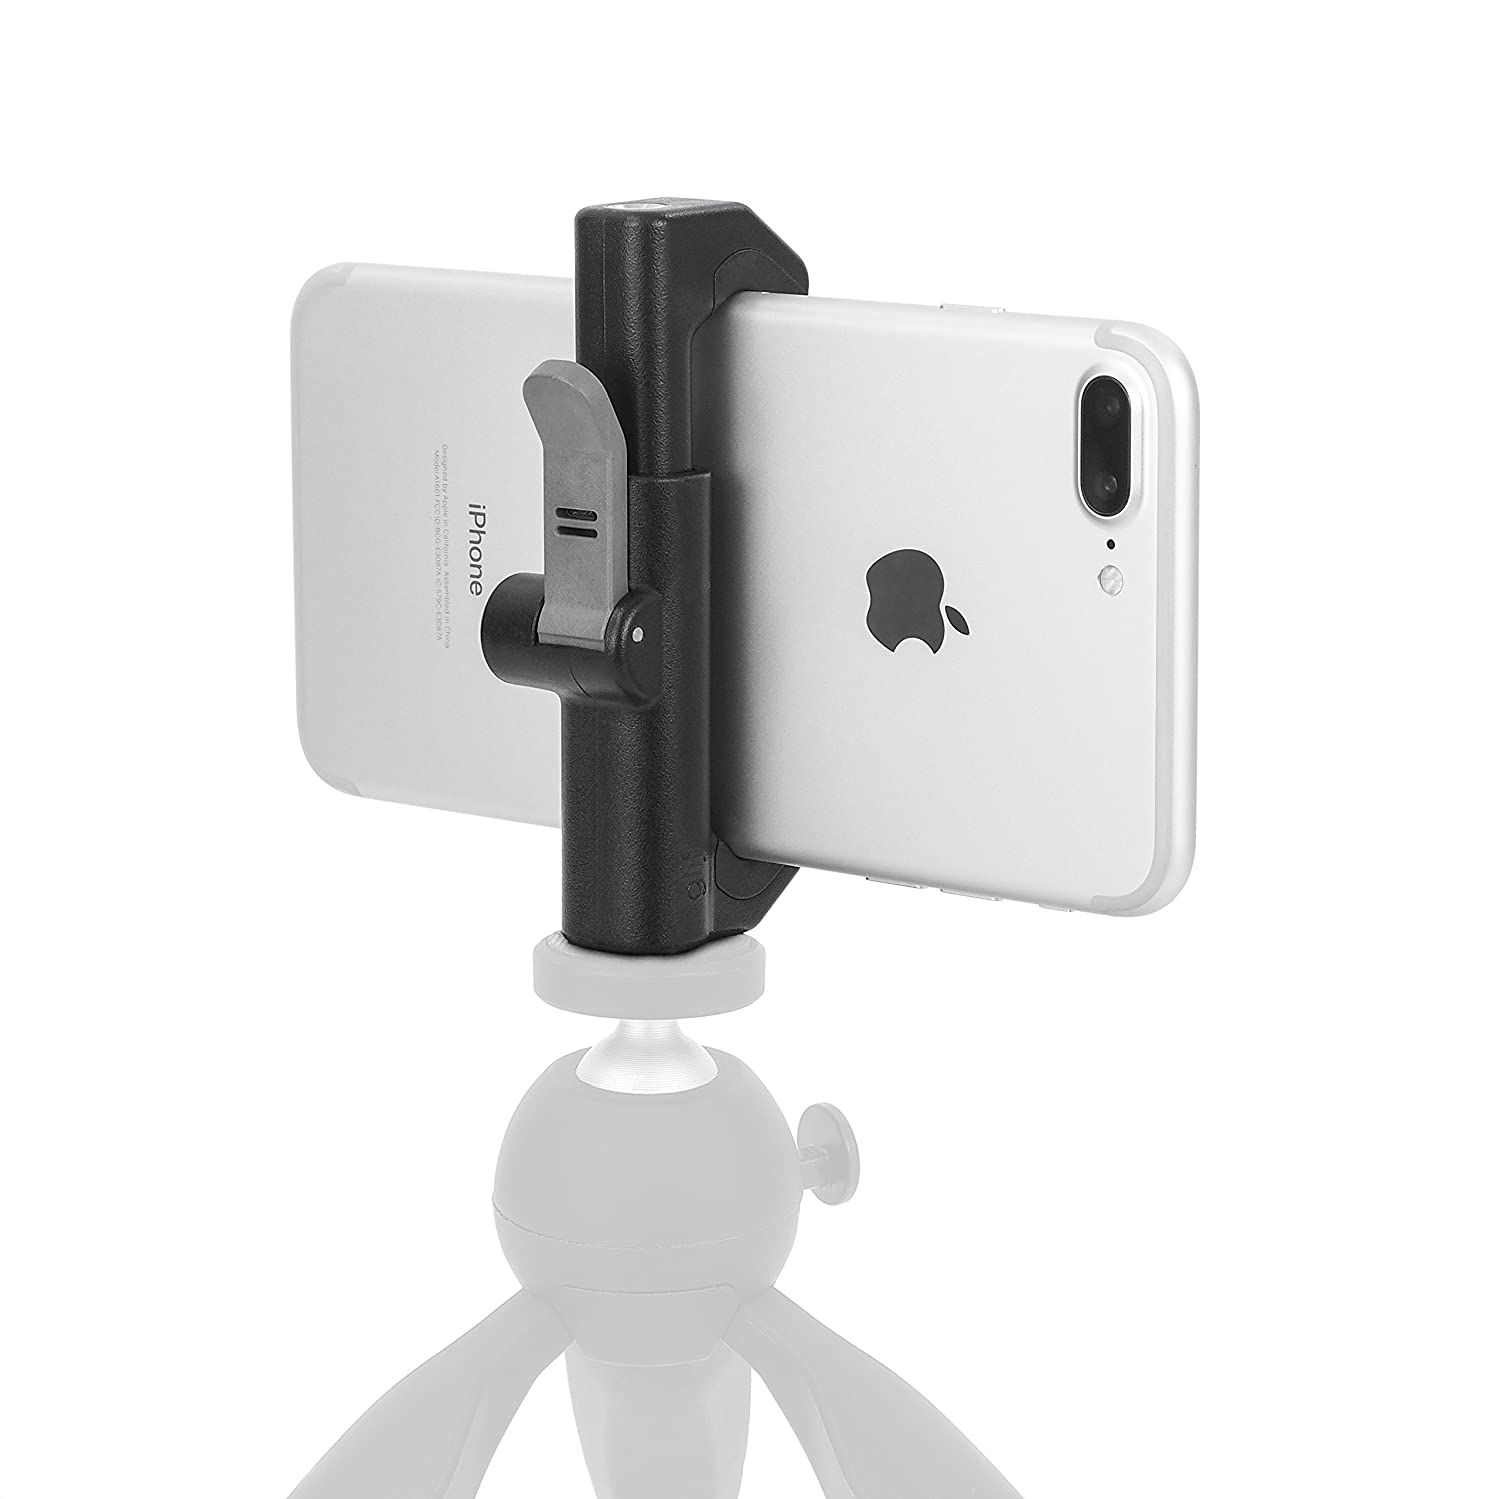 Glif - Quick Release Tripod Mount for Smartphones (Apple iPhone, Samsung Galaxy, Google Pixel, etc). Universal, fits All Devices, Portrait or Landscape. Studio Neat GLF004